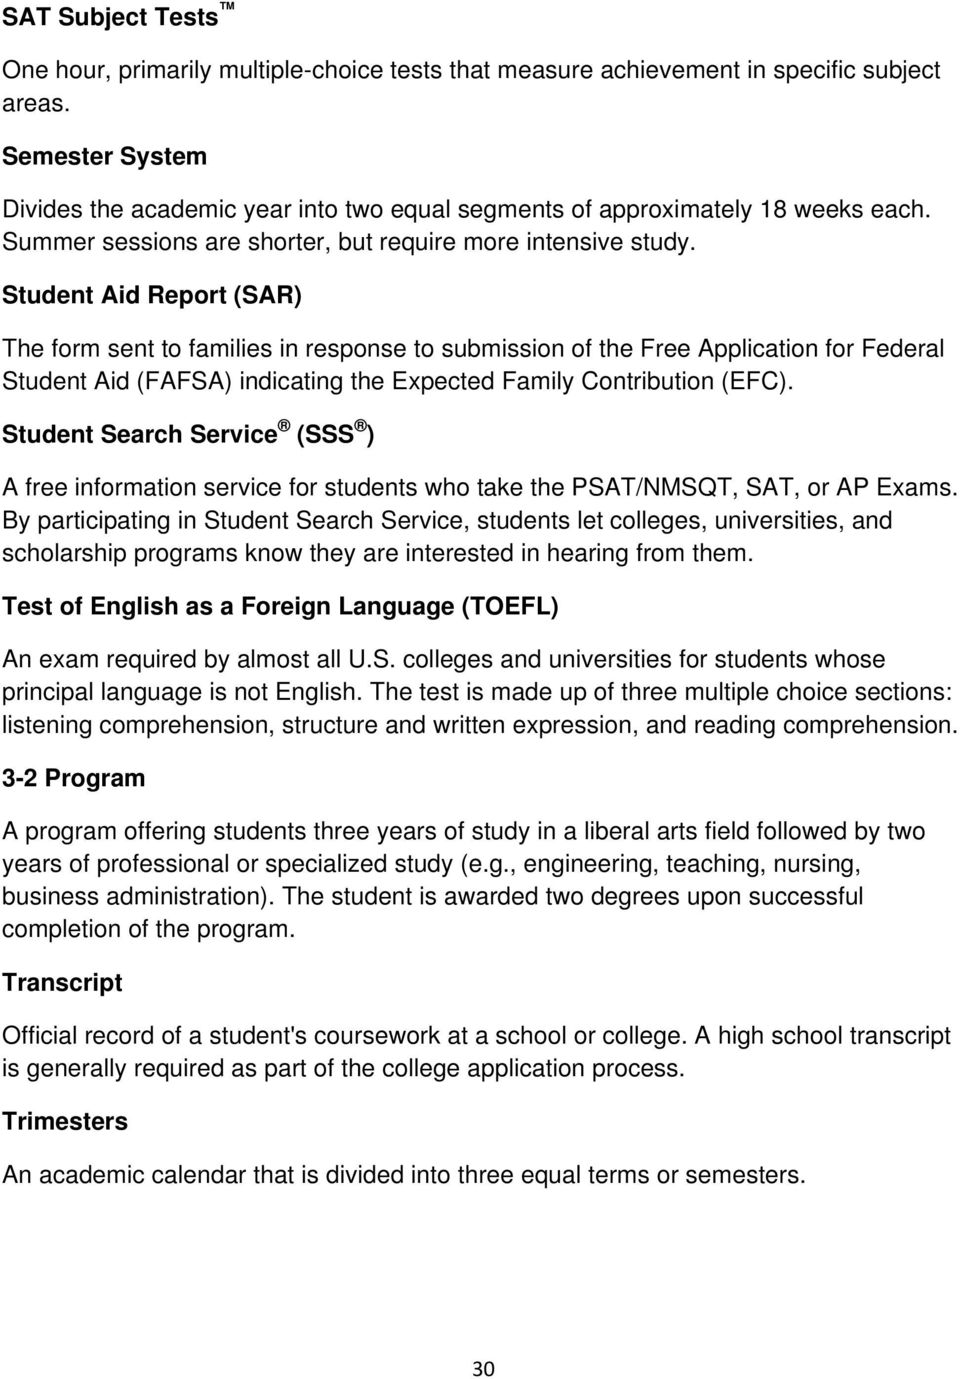 Student Aid Report (SAR) The form sent to families in response to submission of the Free Application for Federal Student Aid (FAFSA) indicating the Expected Family Contribution (EFC).